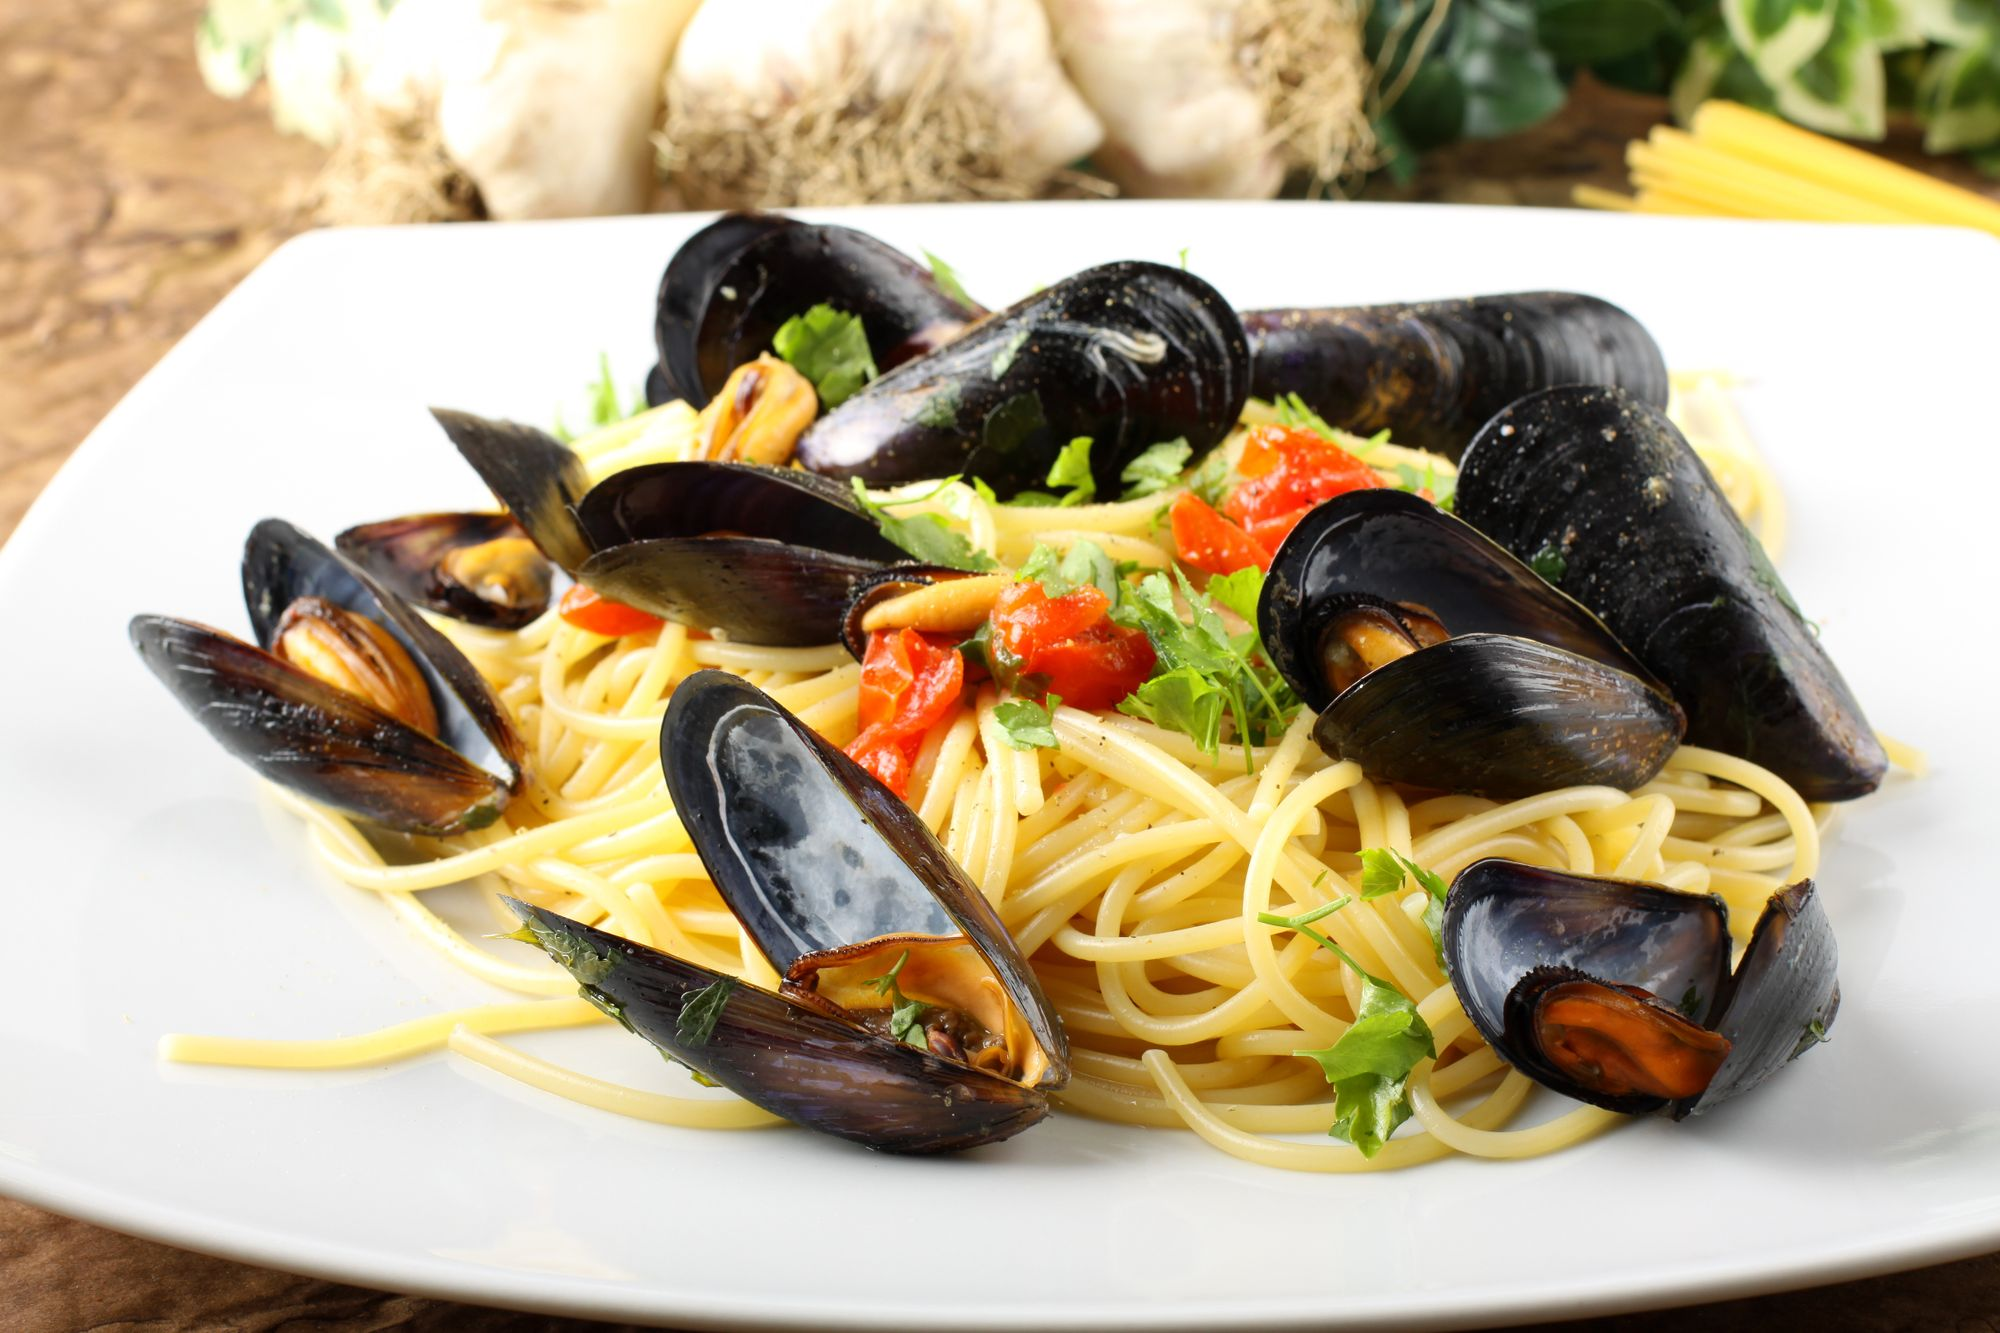 Mussels and Prawns Linguine